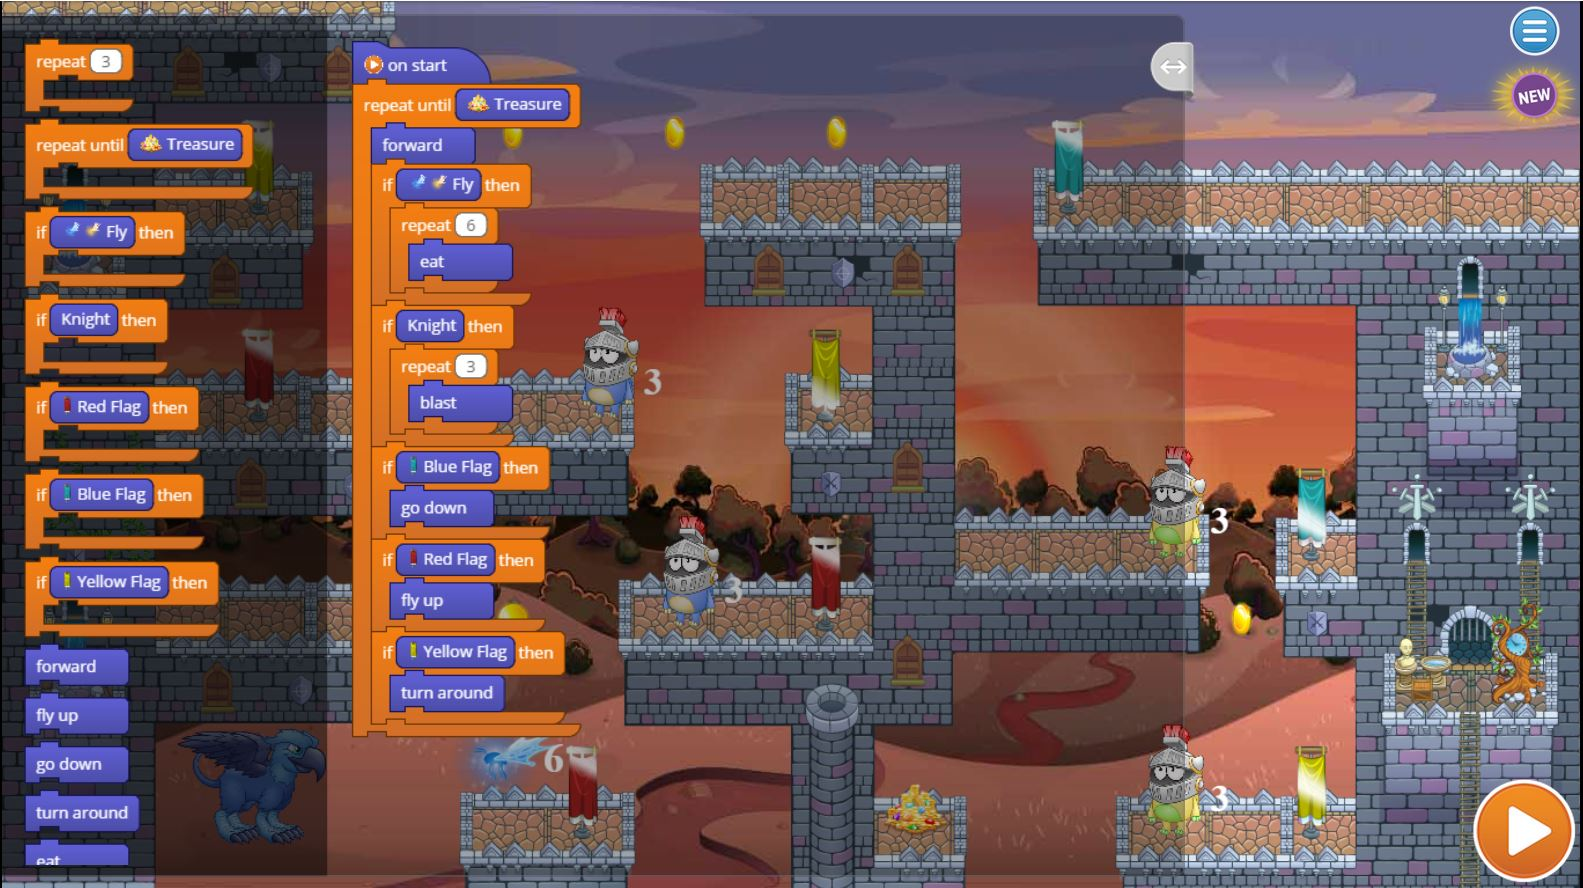 Dragon Dash Puzzle 9 Solution | Coding for Kids | Tynker